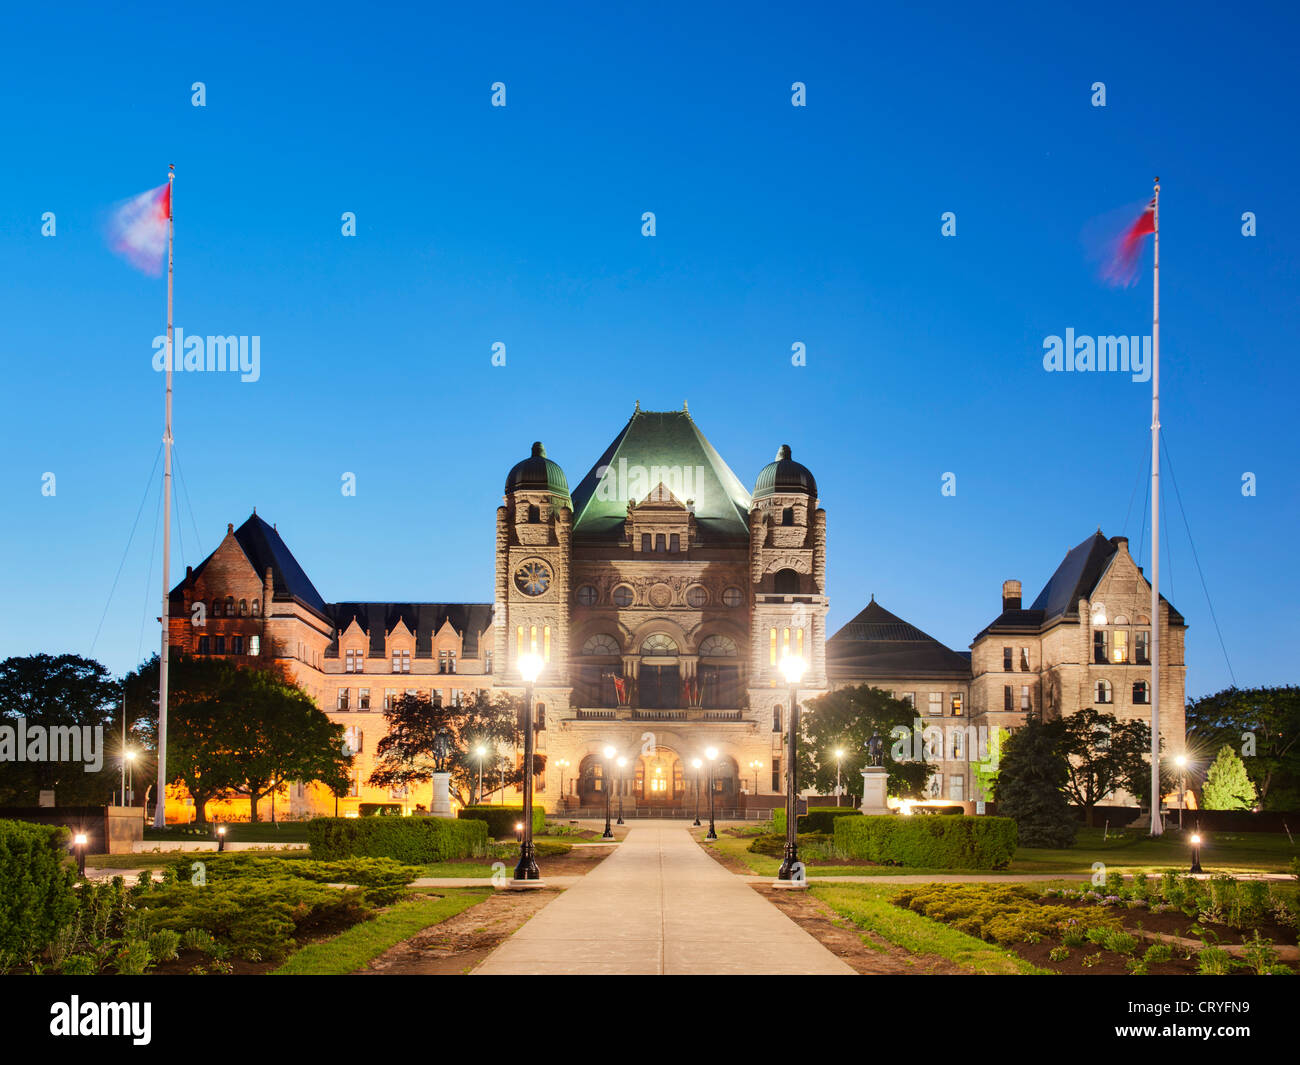 Ontario Legislative Assembly Gesetzgeber, Toronto Stockfoto